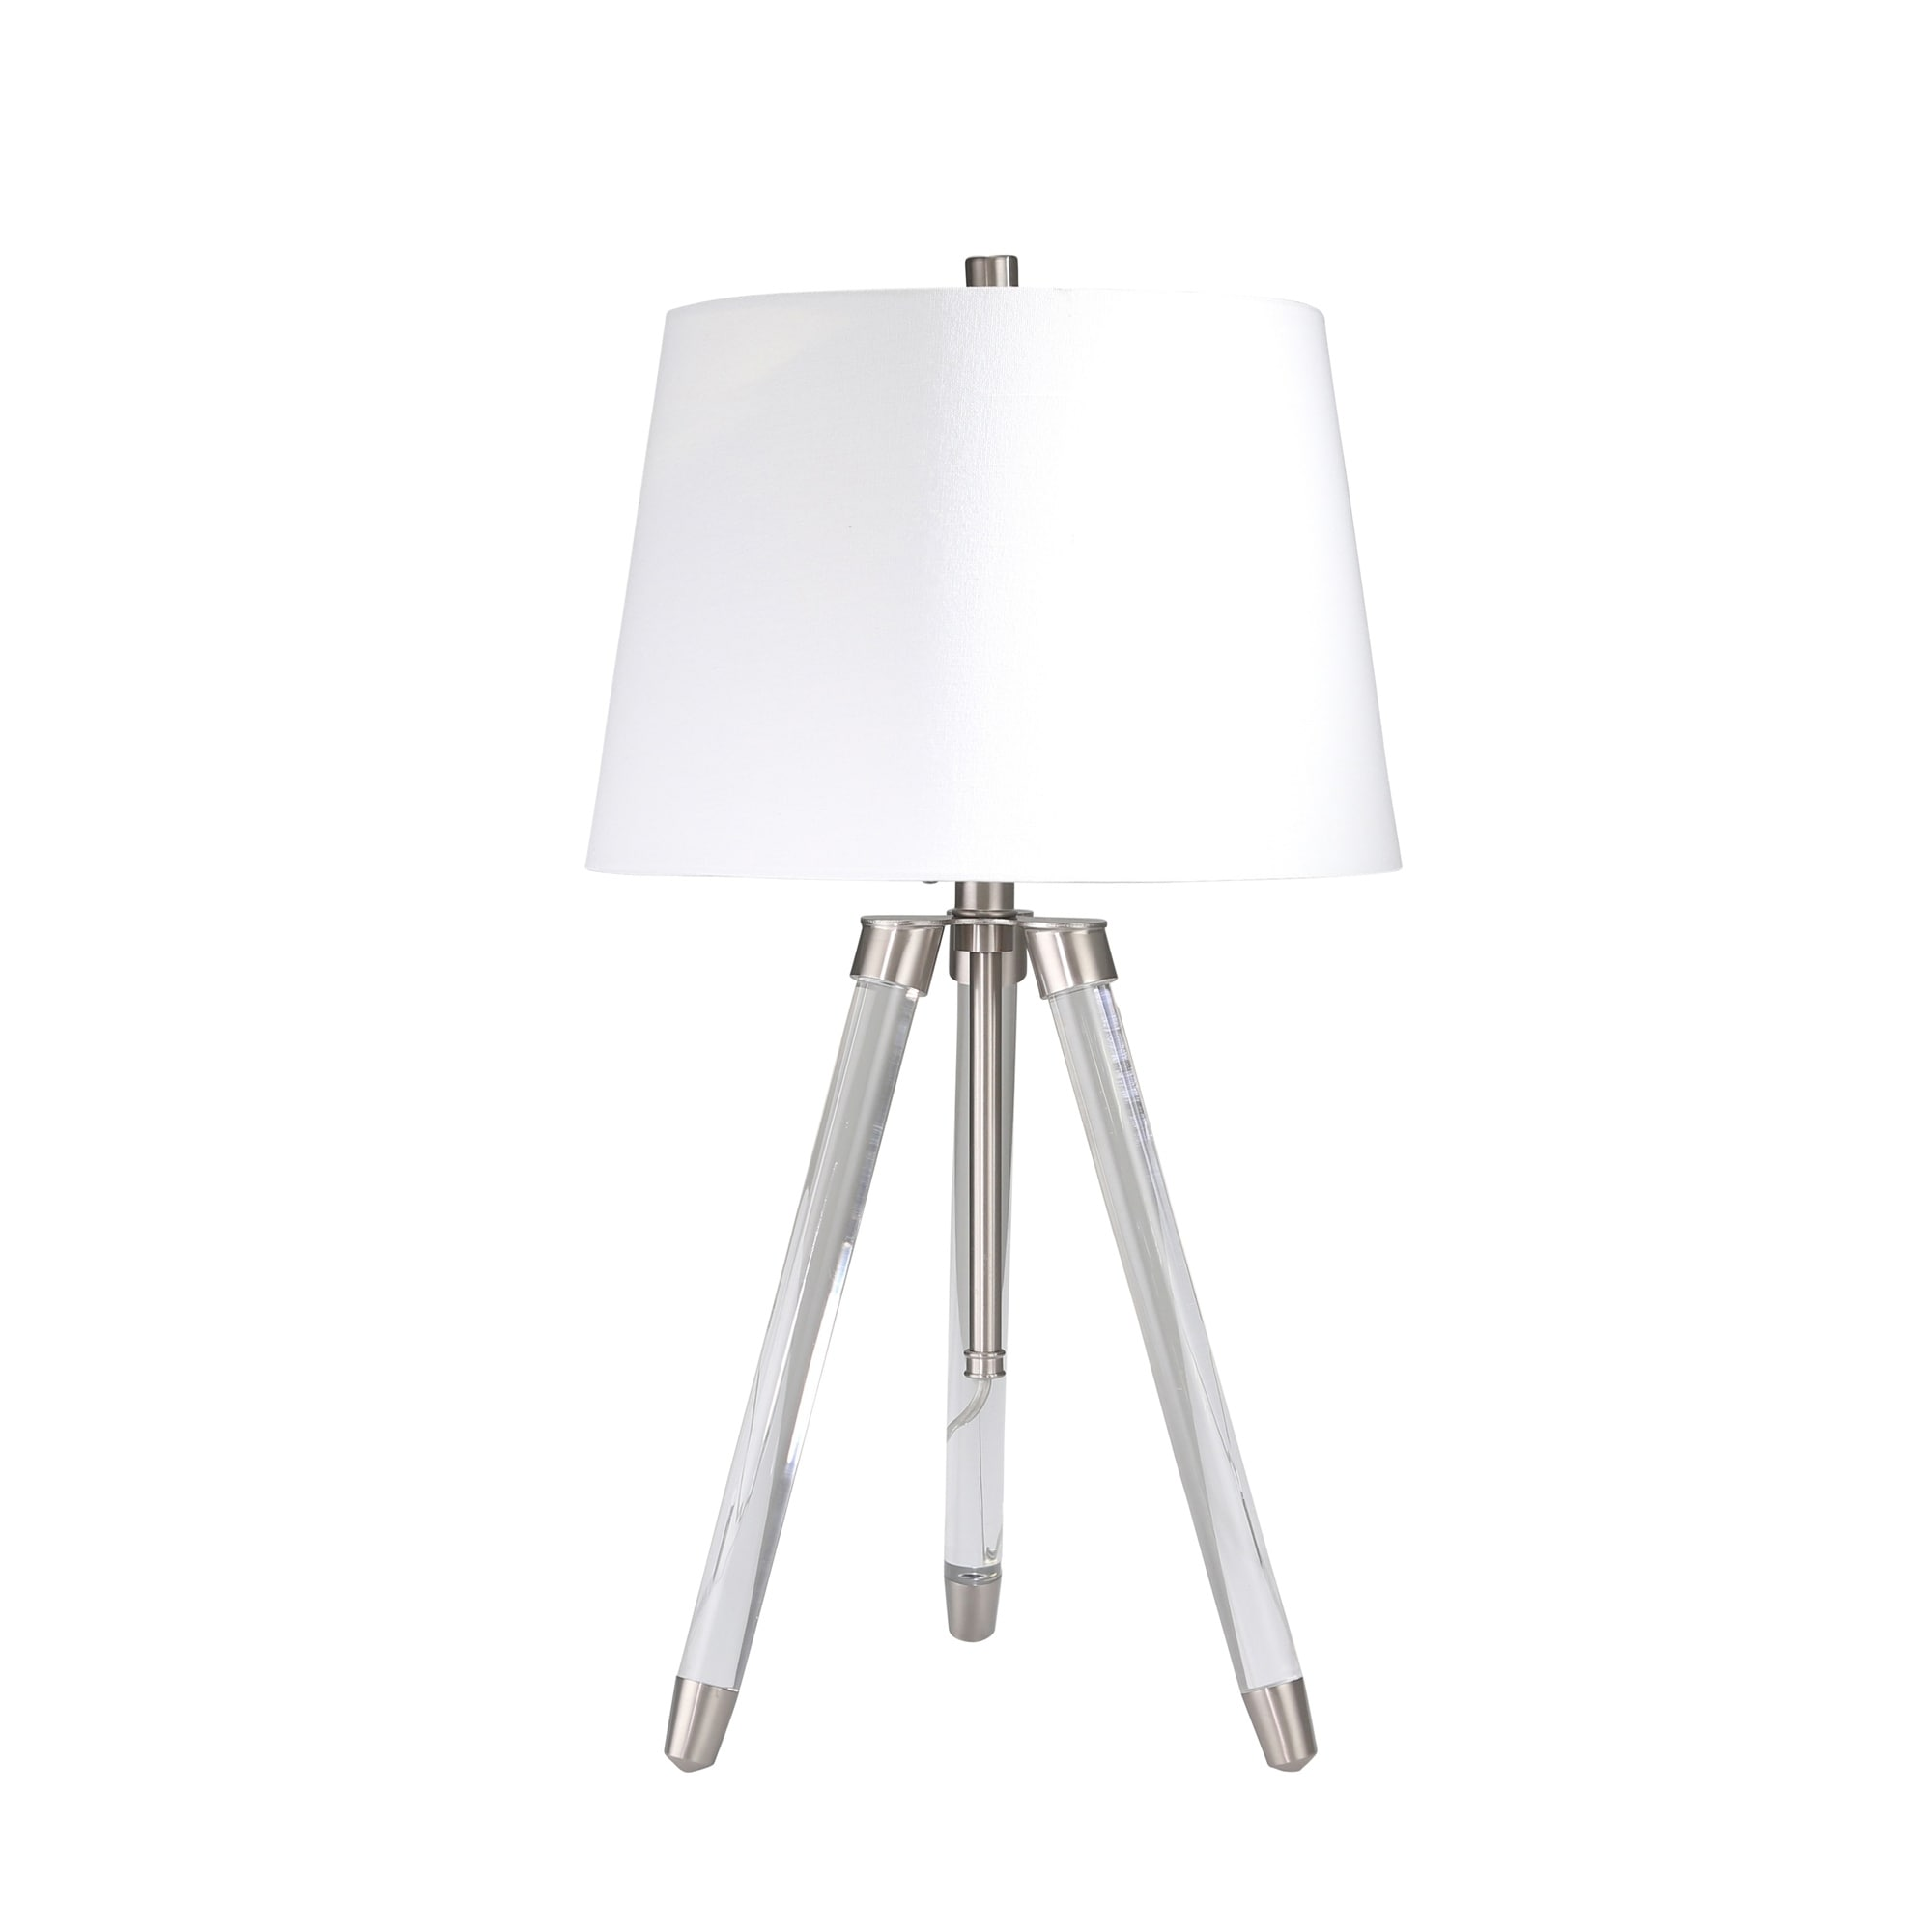 Shop Black Friday Deals On Acrylic Adjustable Tripod Table Lamp Clear Silver 31 On Sale Overstock 25623379